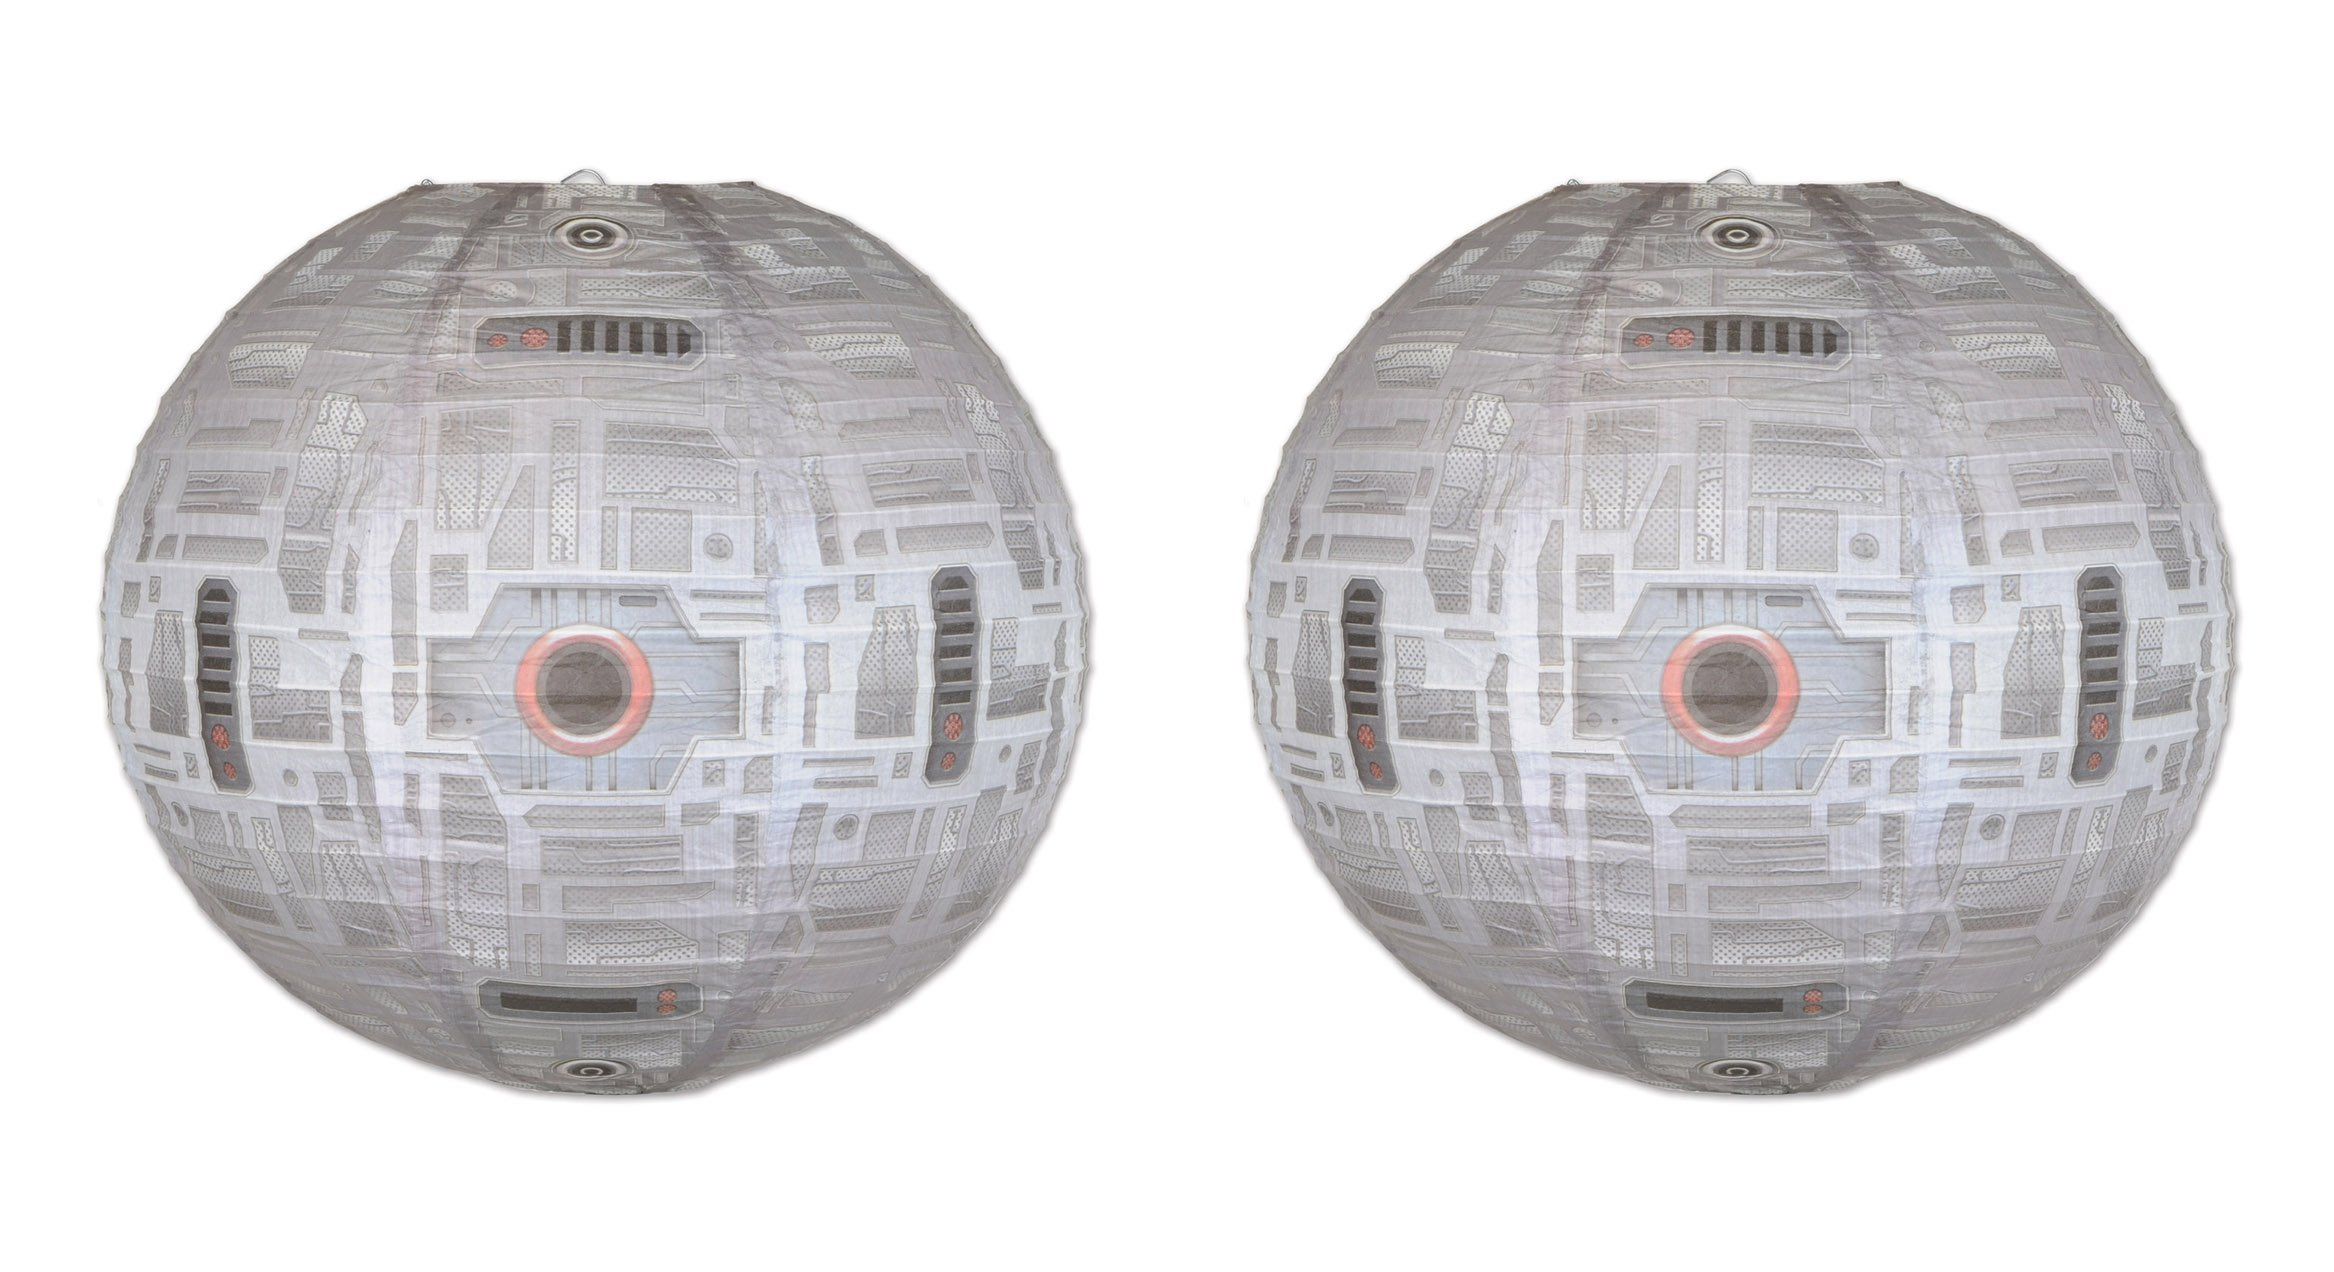 Beistle 59895 2Piece Space Station Paper Lanterns, 15.5'', Multicolored by Beistle